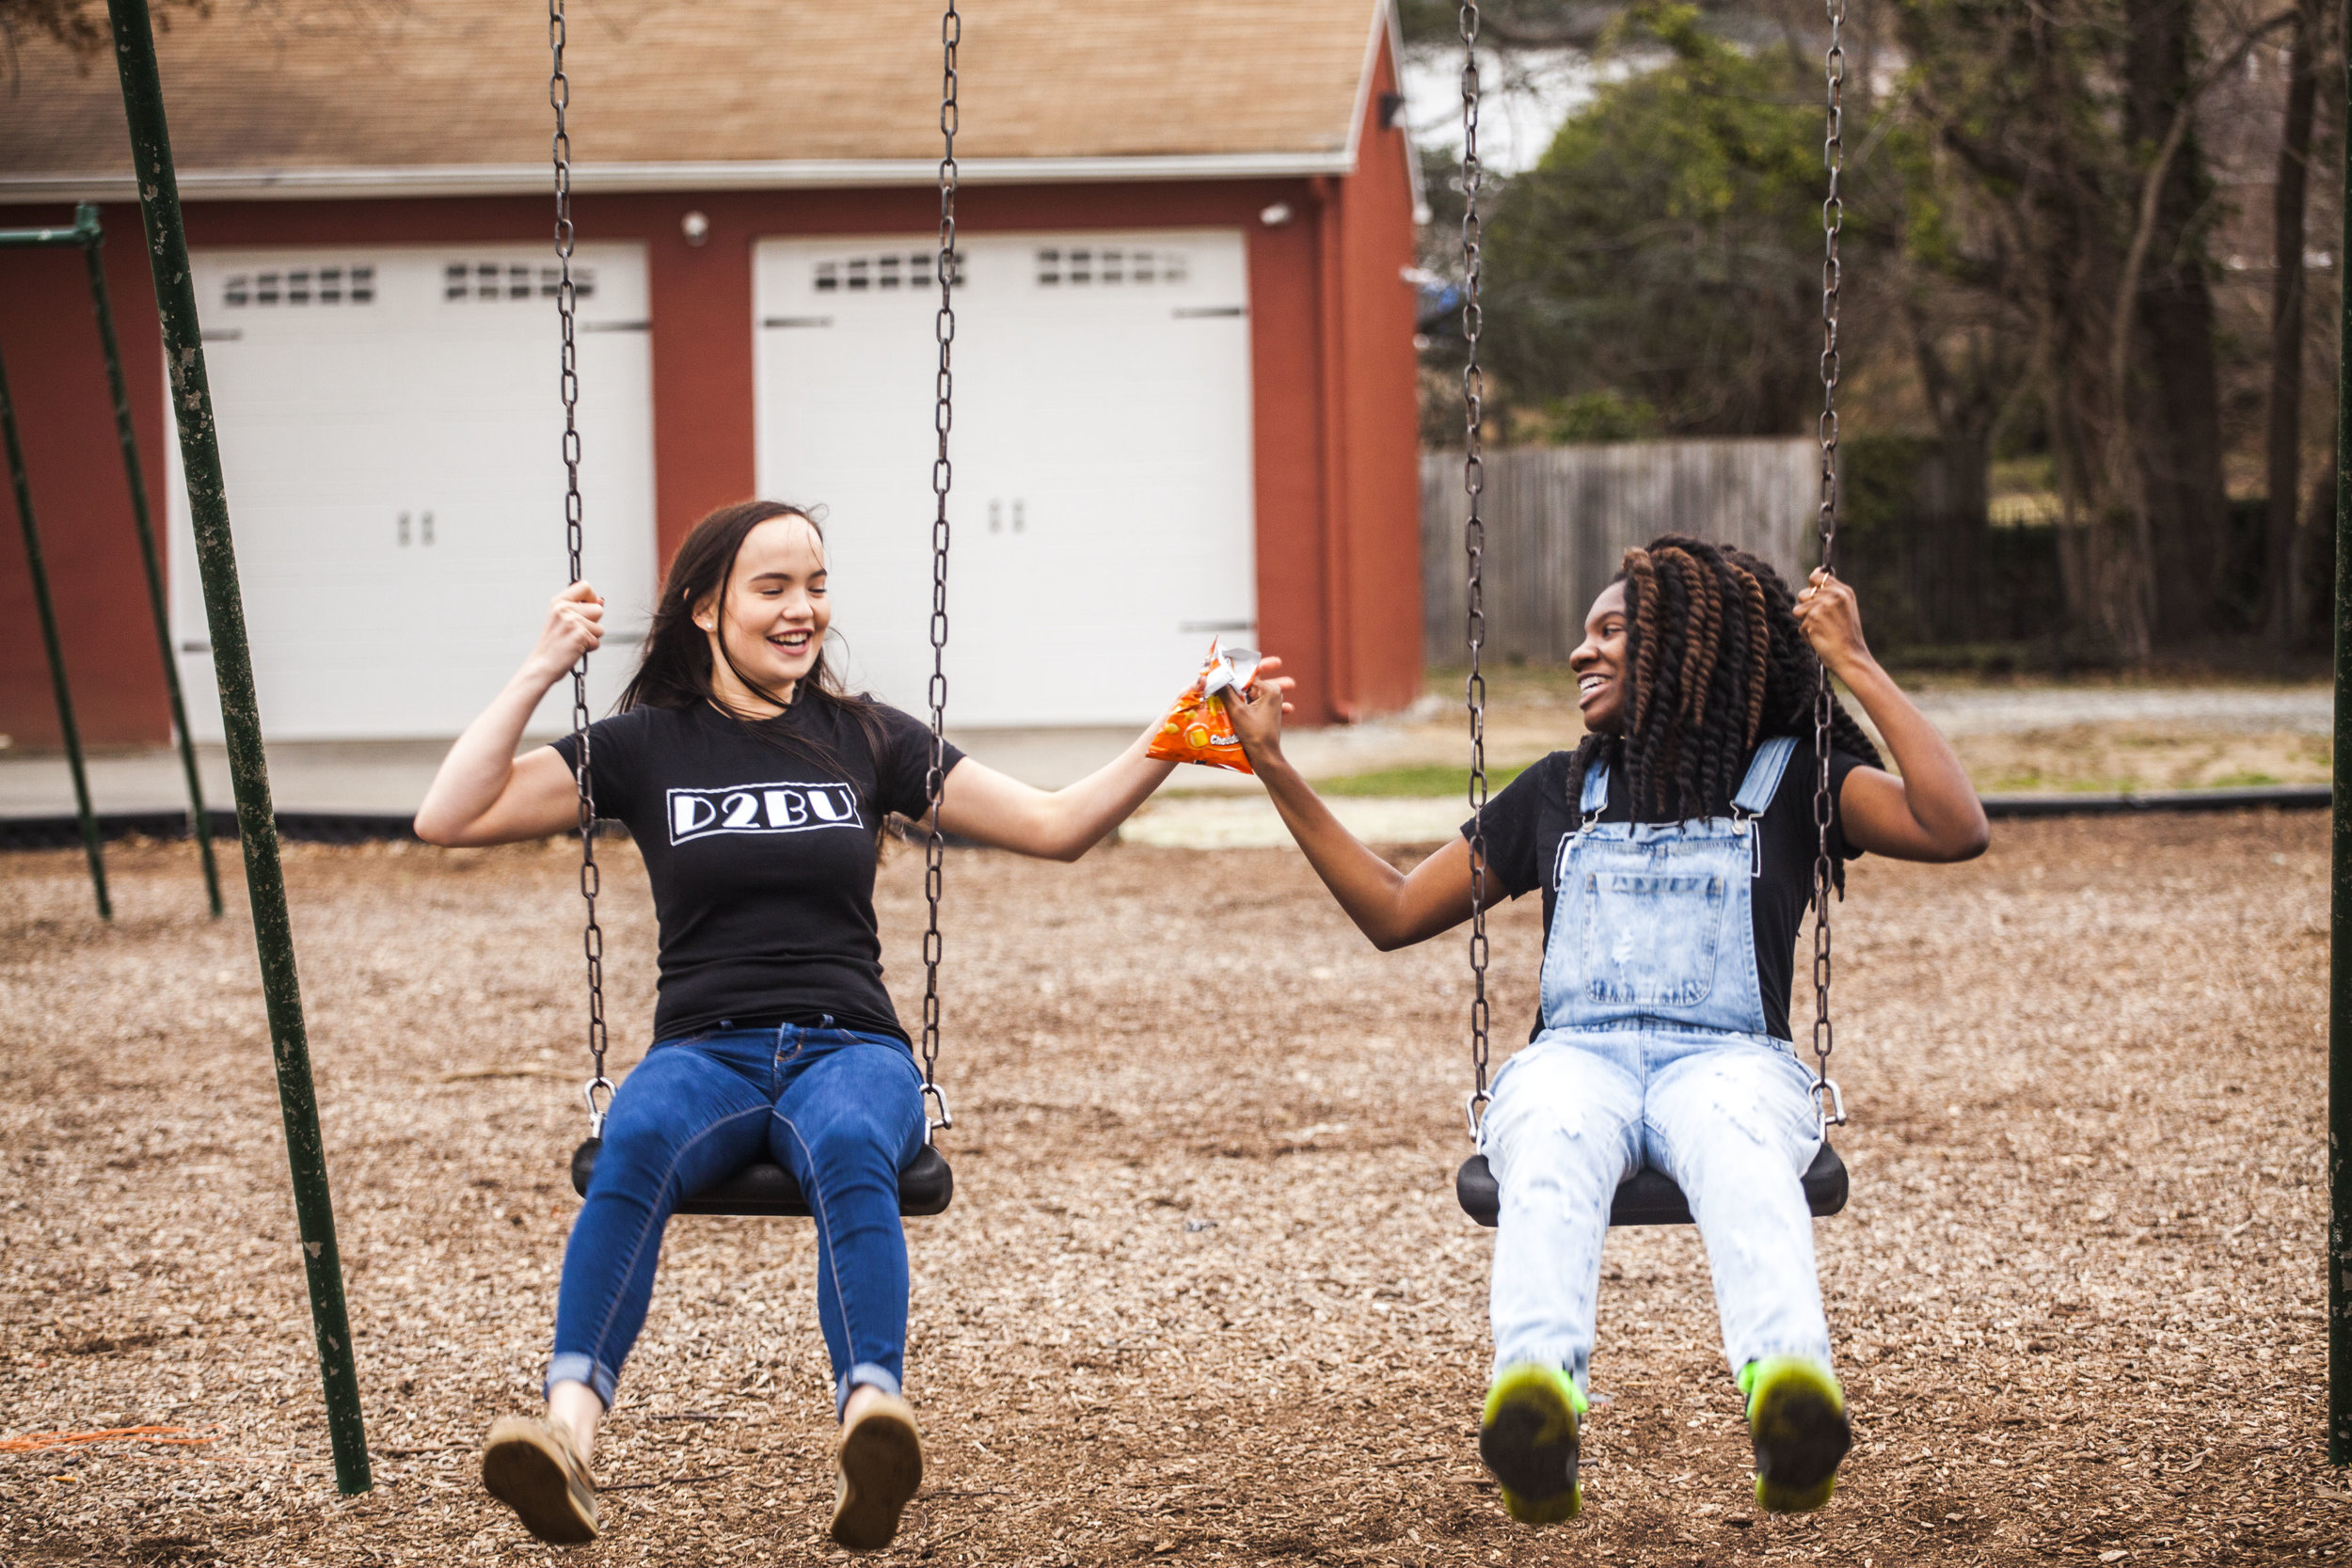 Dare to Share - Swinging together and creating those moments